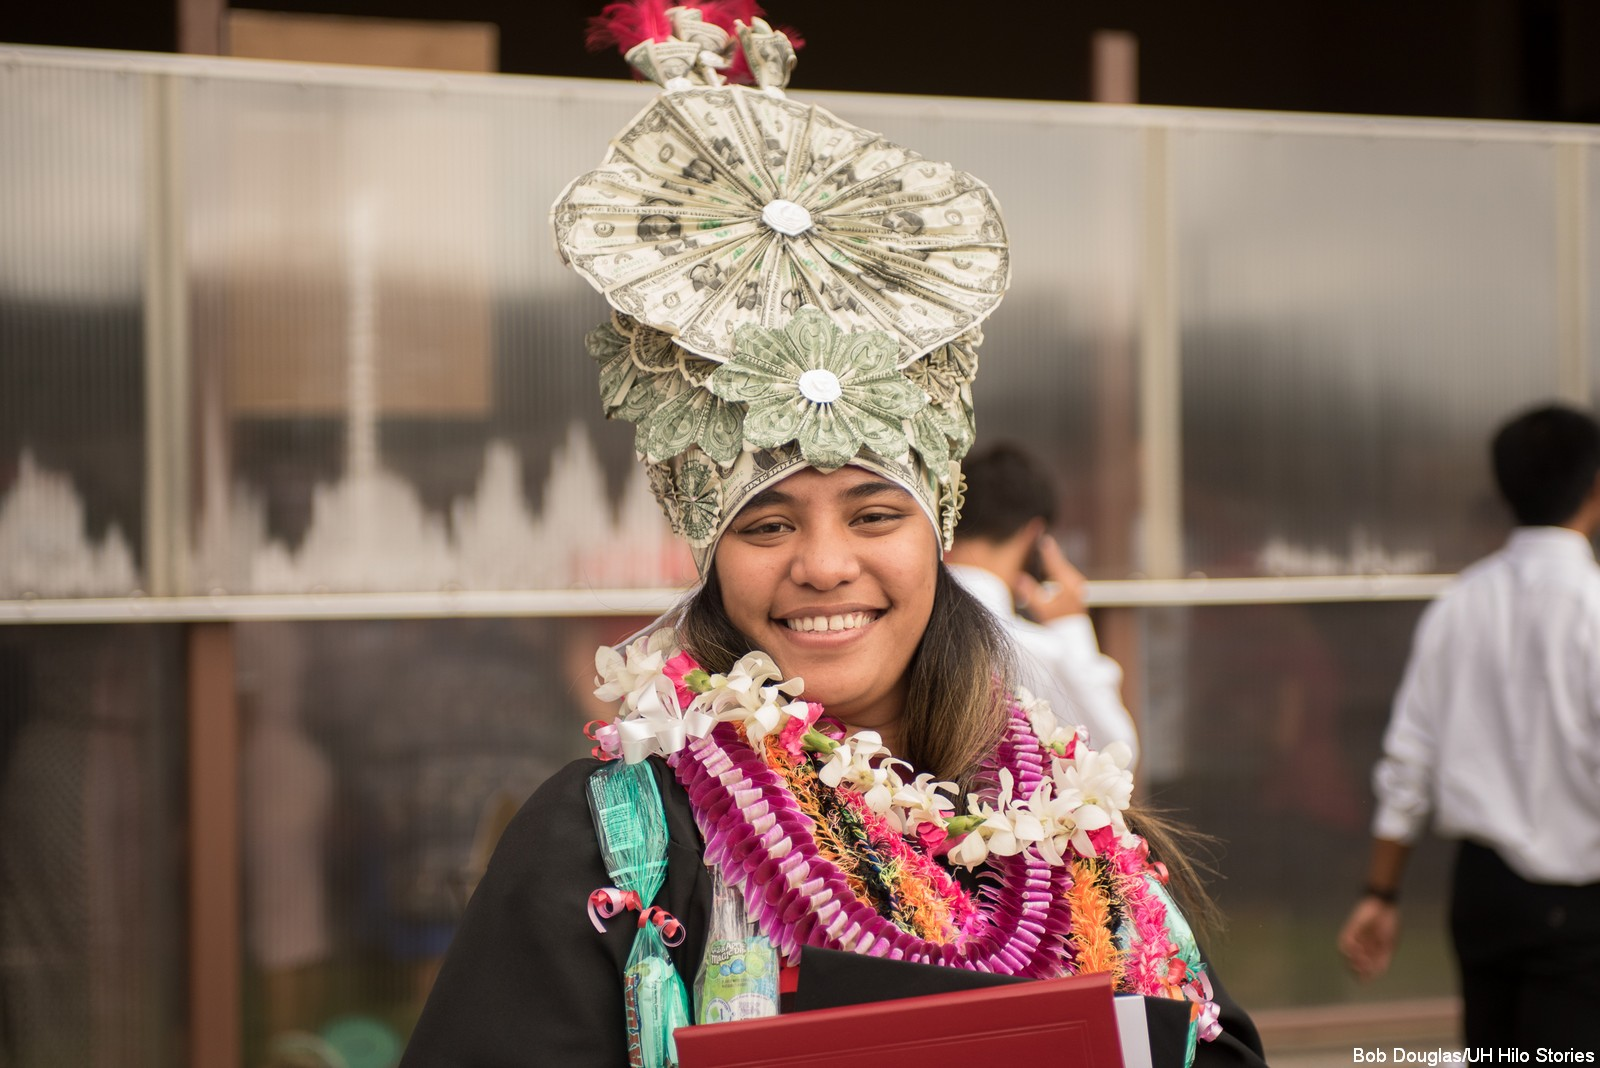 PHOTOS: UH Hilo 2016 Fall Commencement